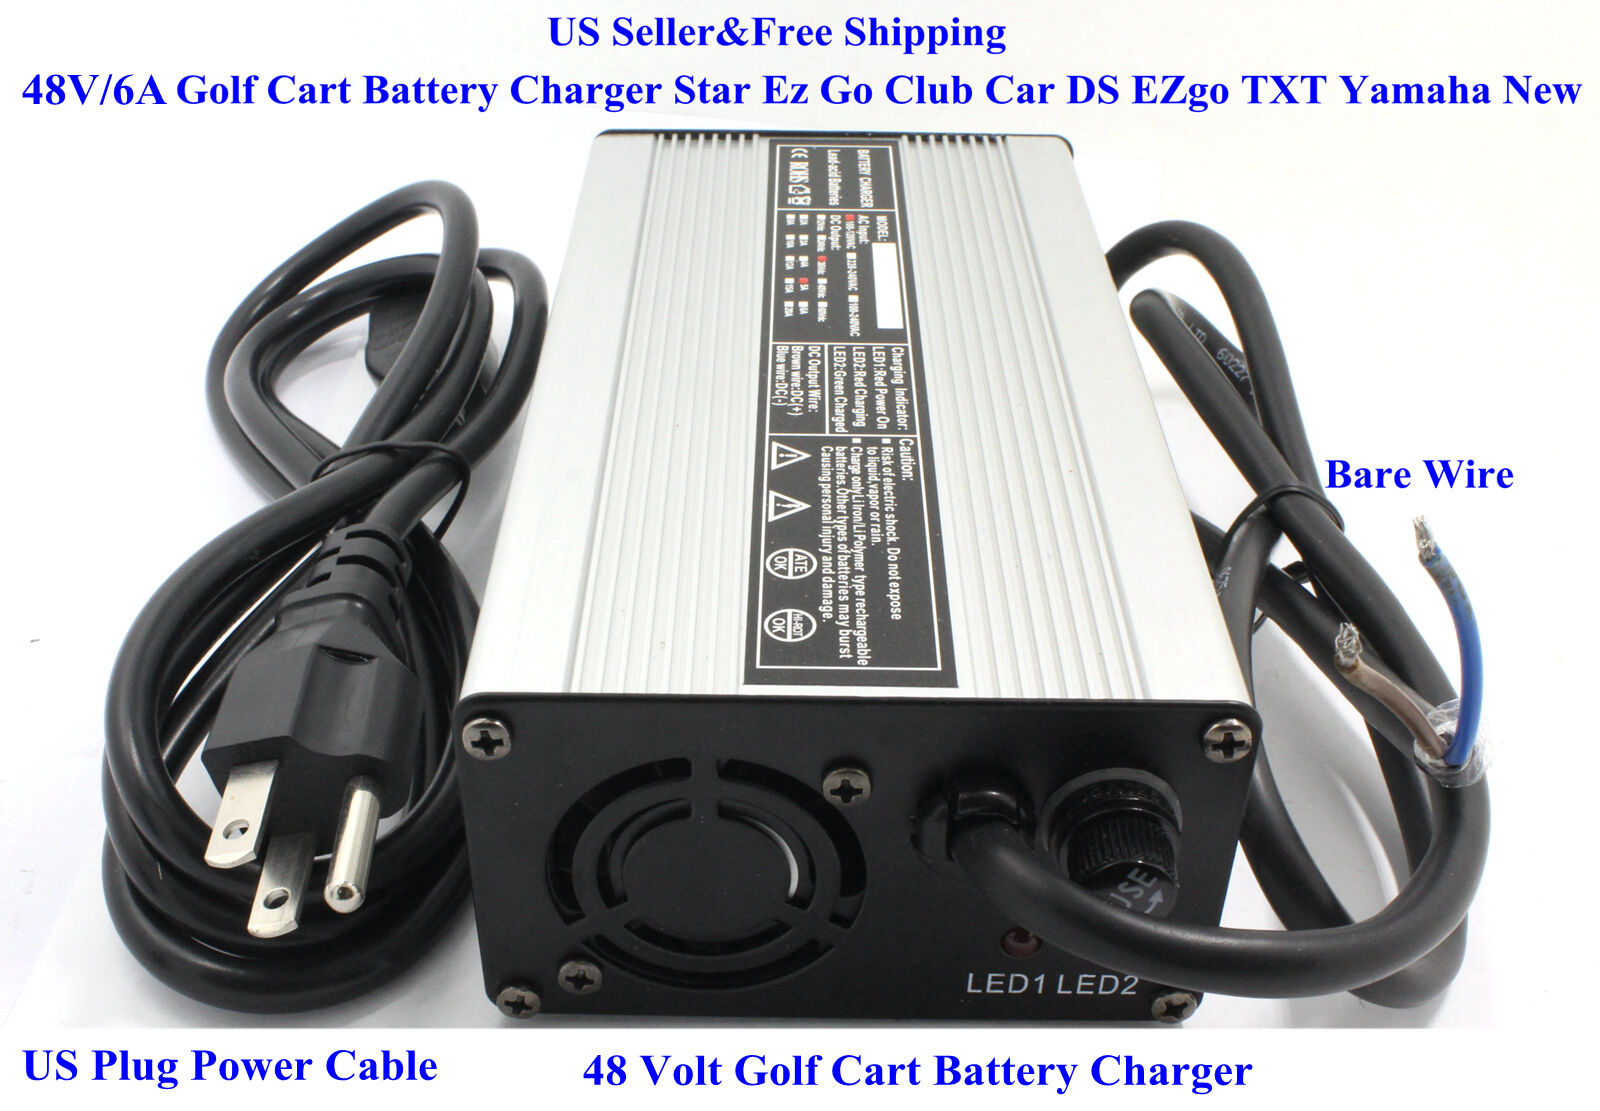 new 48 volt golf cart battery charger 6a star ez go club. Black Bedroom Furniture Sets. Home Design Ideas